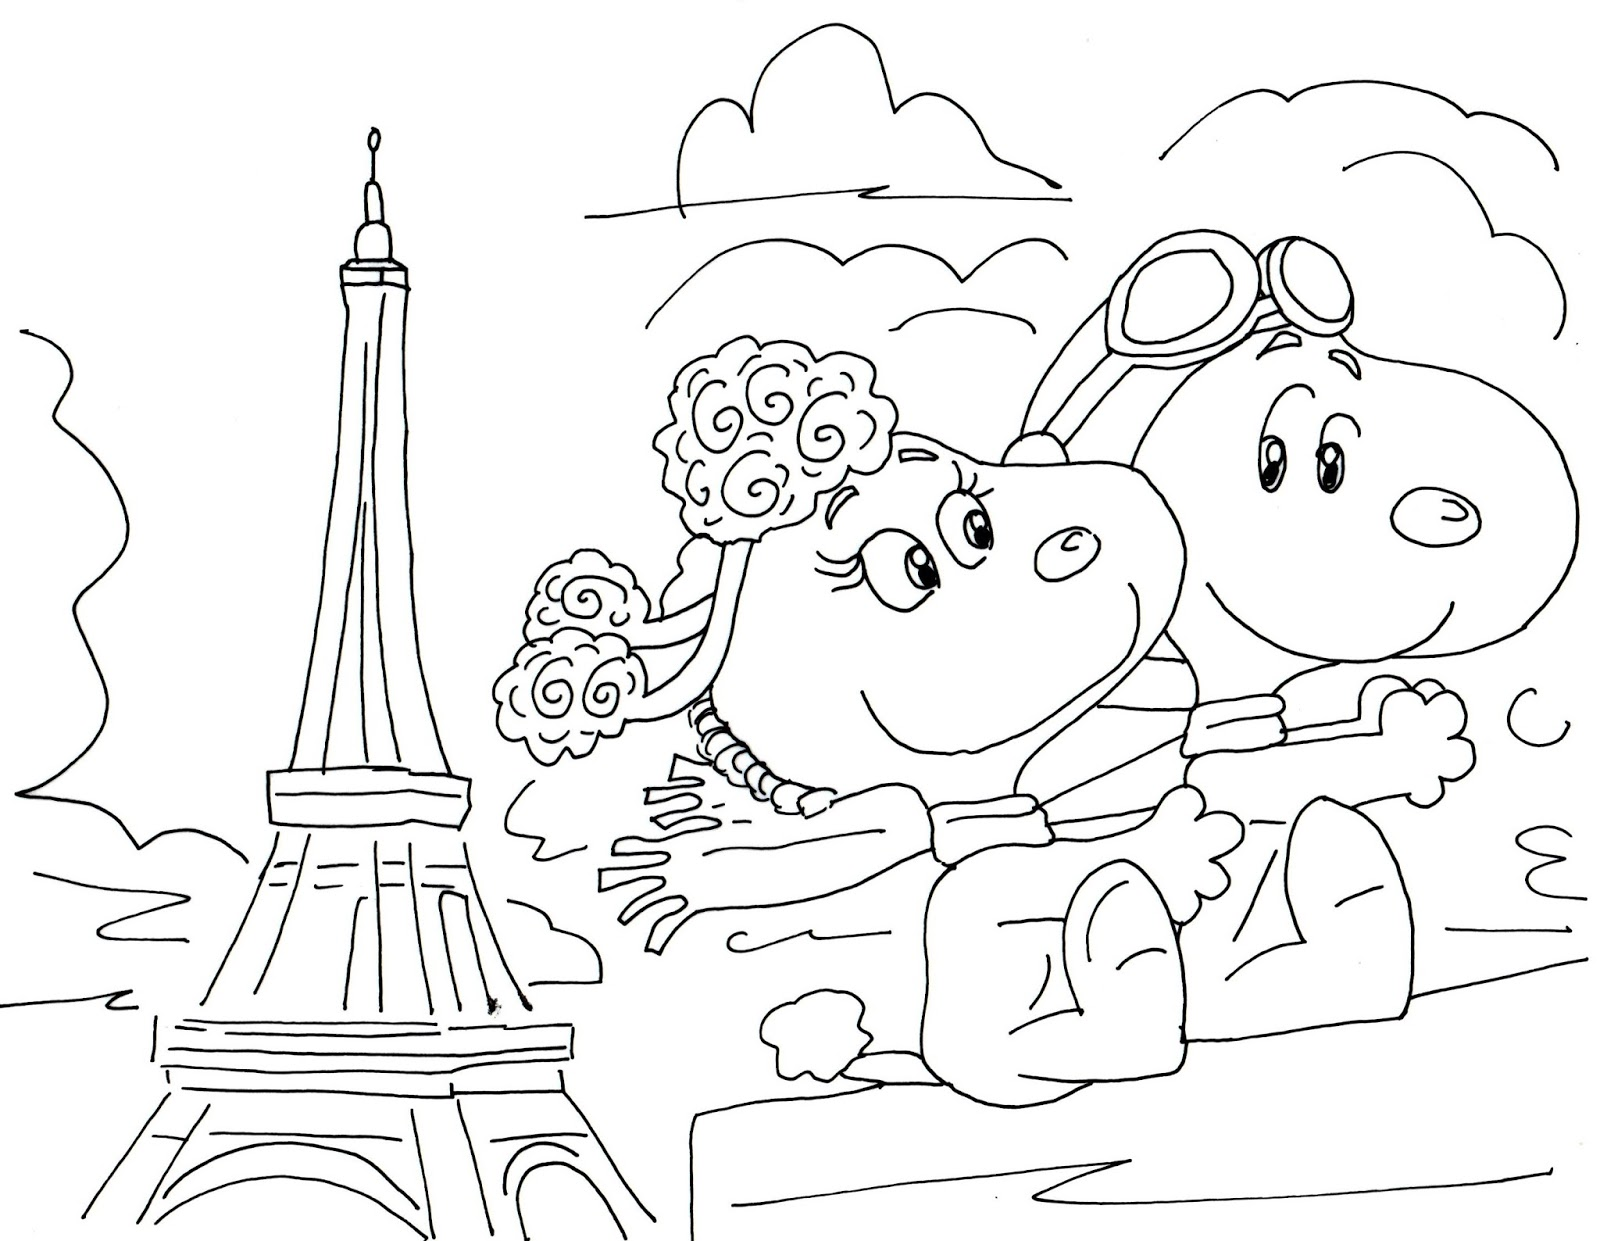 1600x1241 Poodle Puppy Coloring Pages, Poodle Puppy Colouring Pages